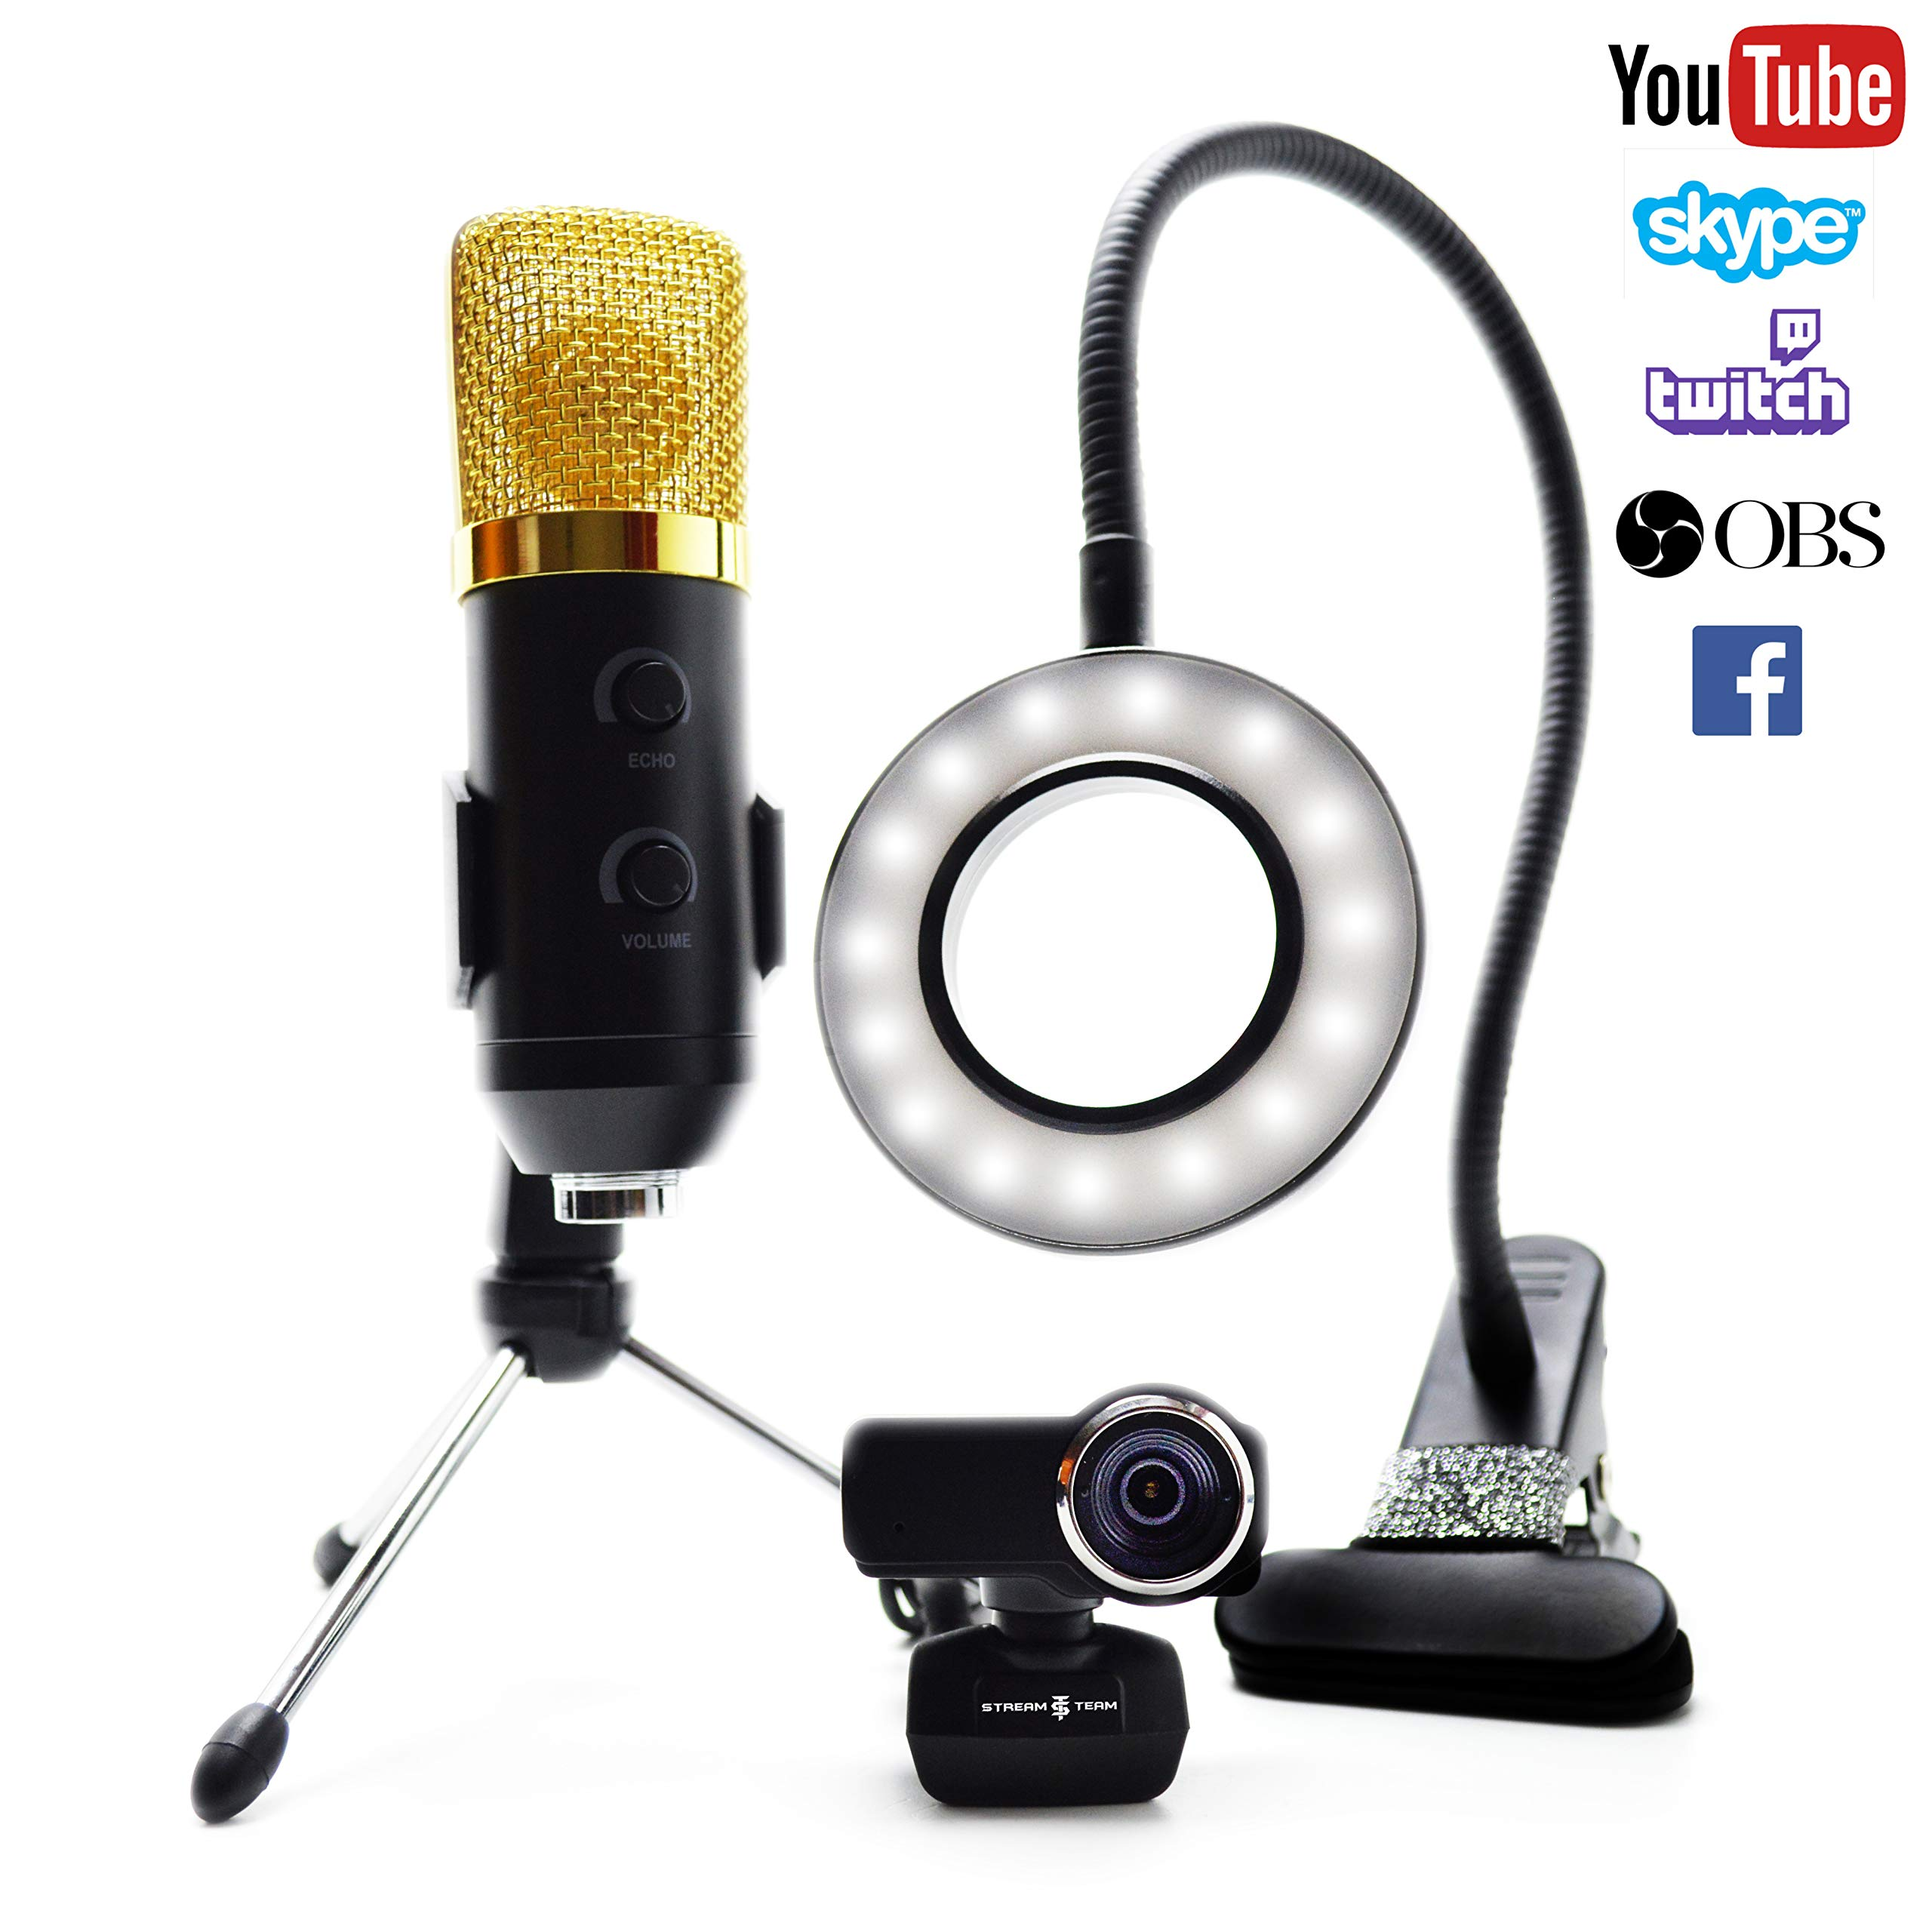 Consumer Electronics Professional 3.5mm Stereo Audio Male To 2 Female Headset Mic Y Splitter Cable Adapter To Prevent And Cure Diseases Digital Cables